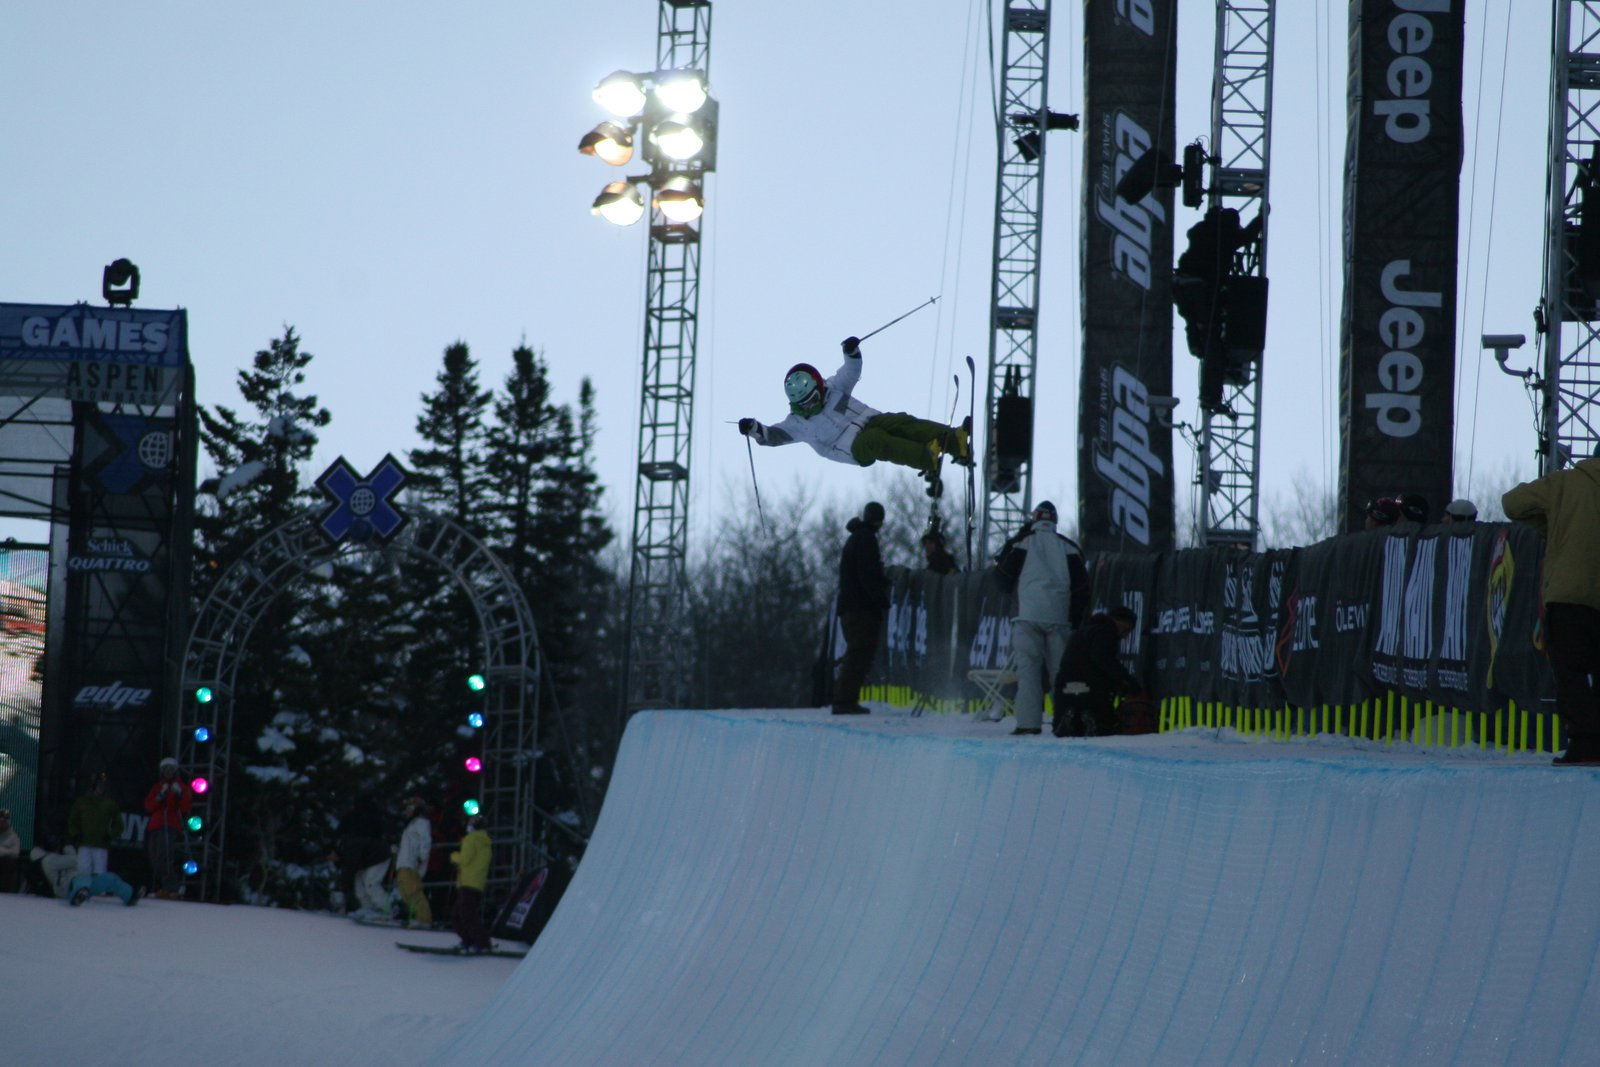 Another x games air